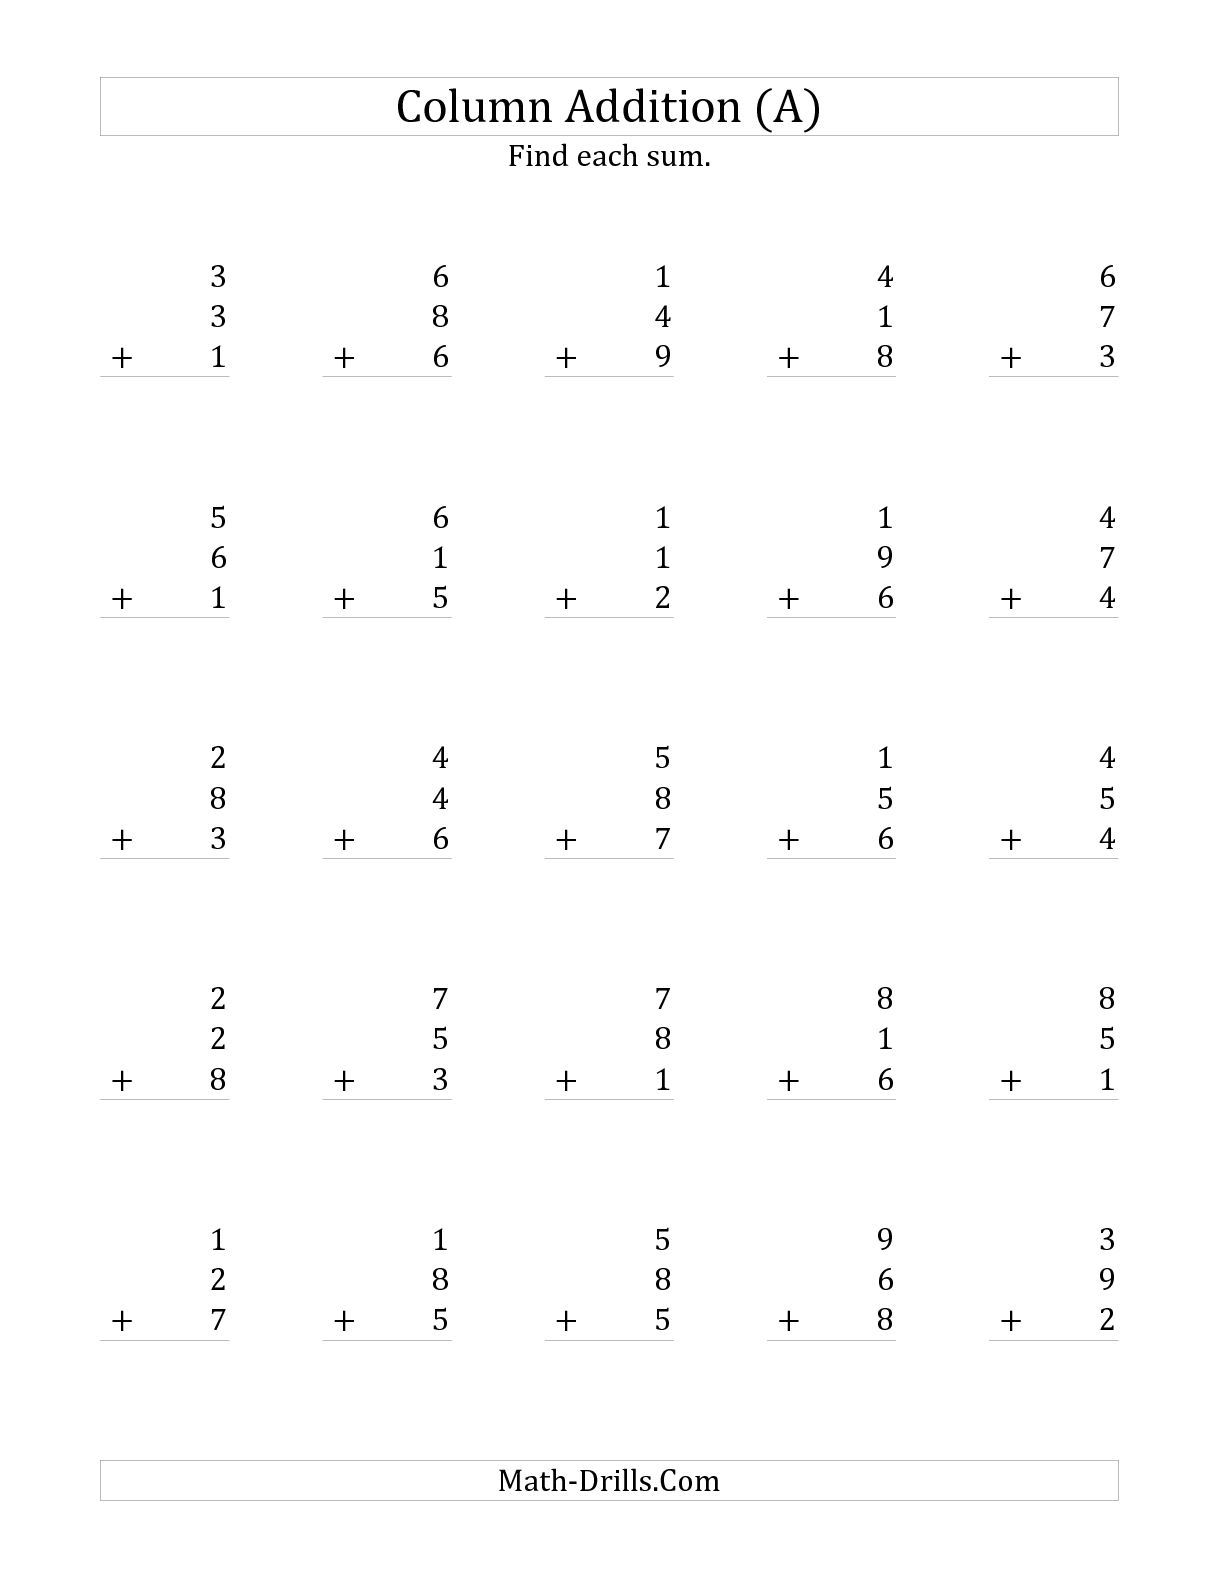 The Adding Three One Digit Numbers A Math Worksheet From The Addition Worksheet Page At Math